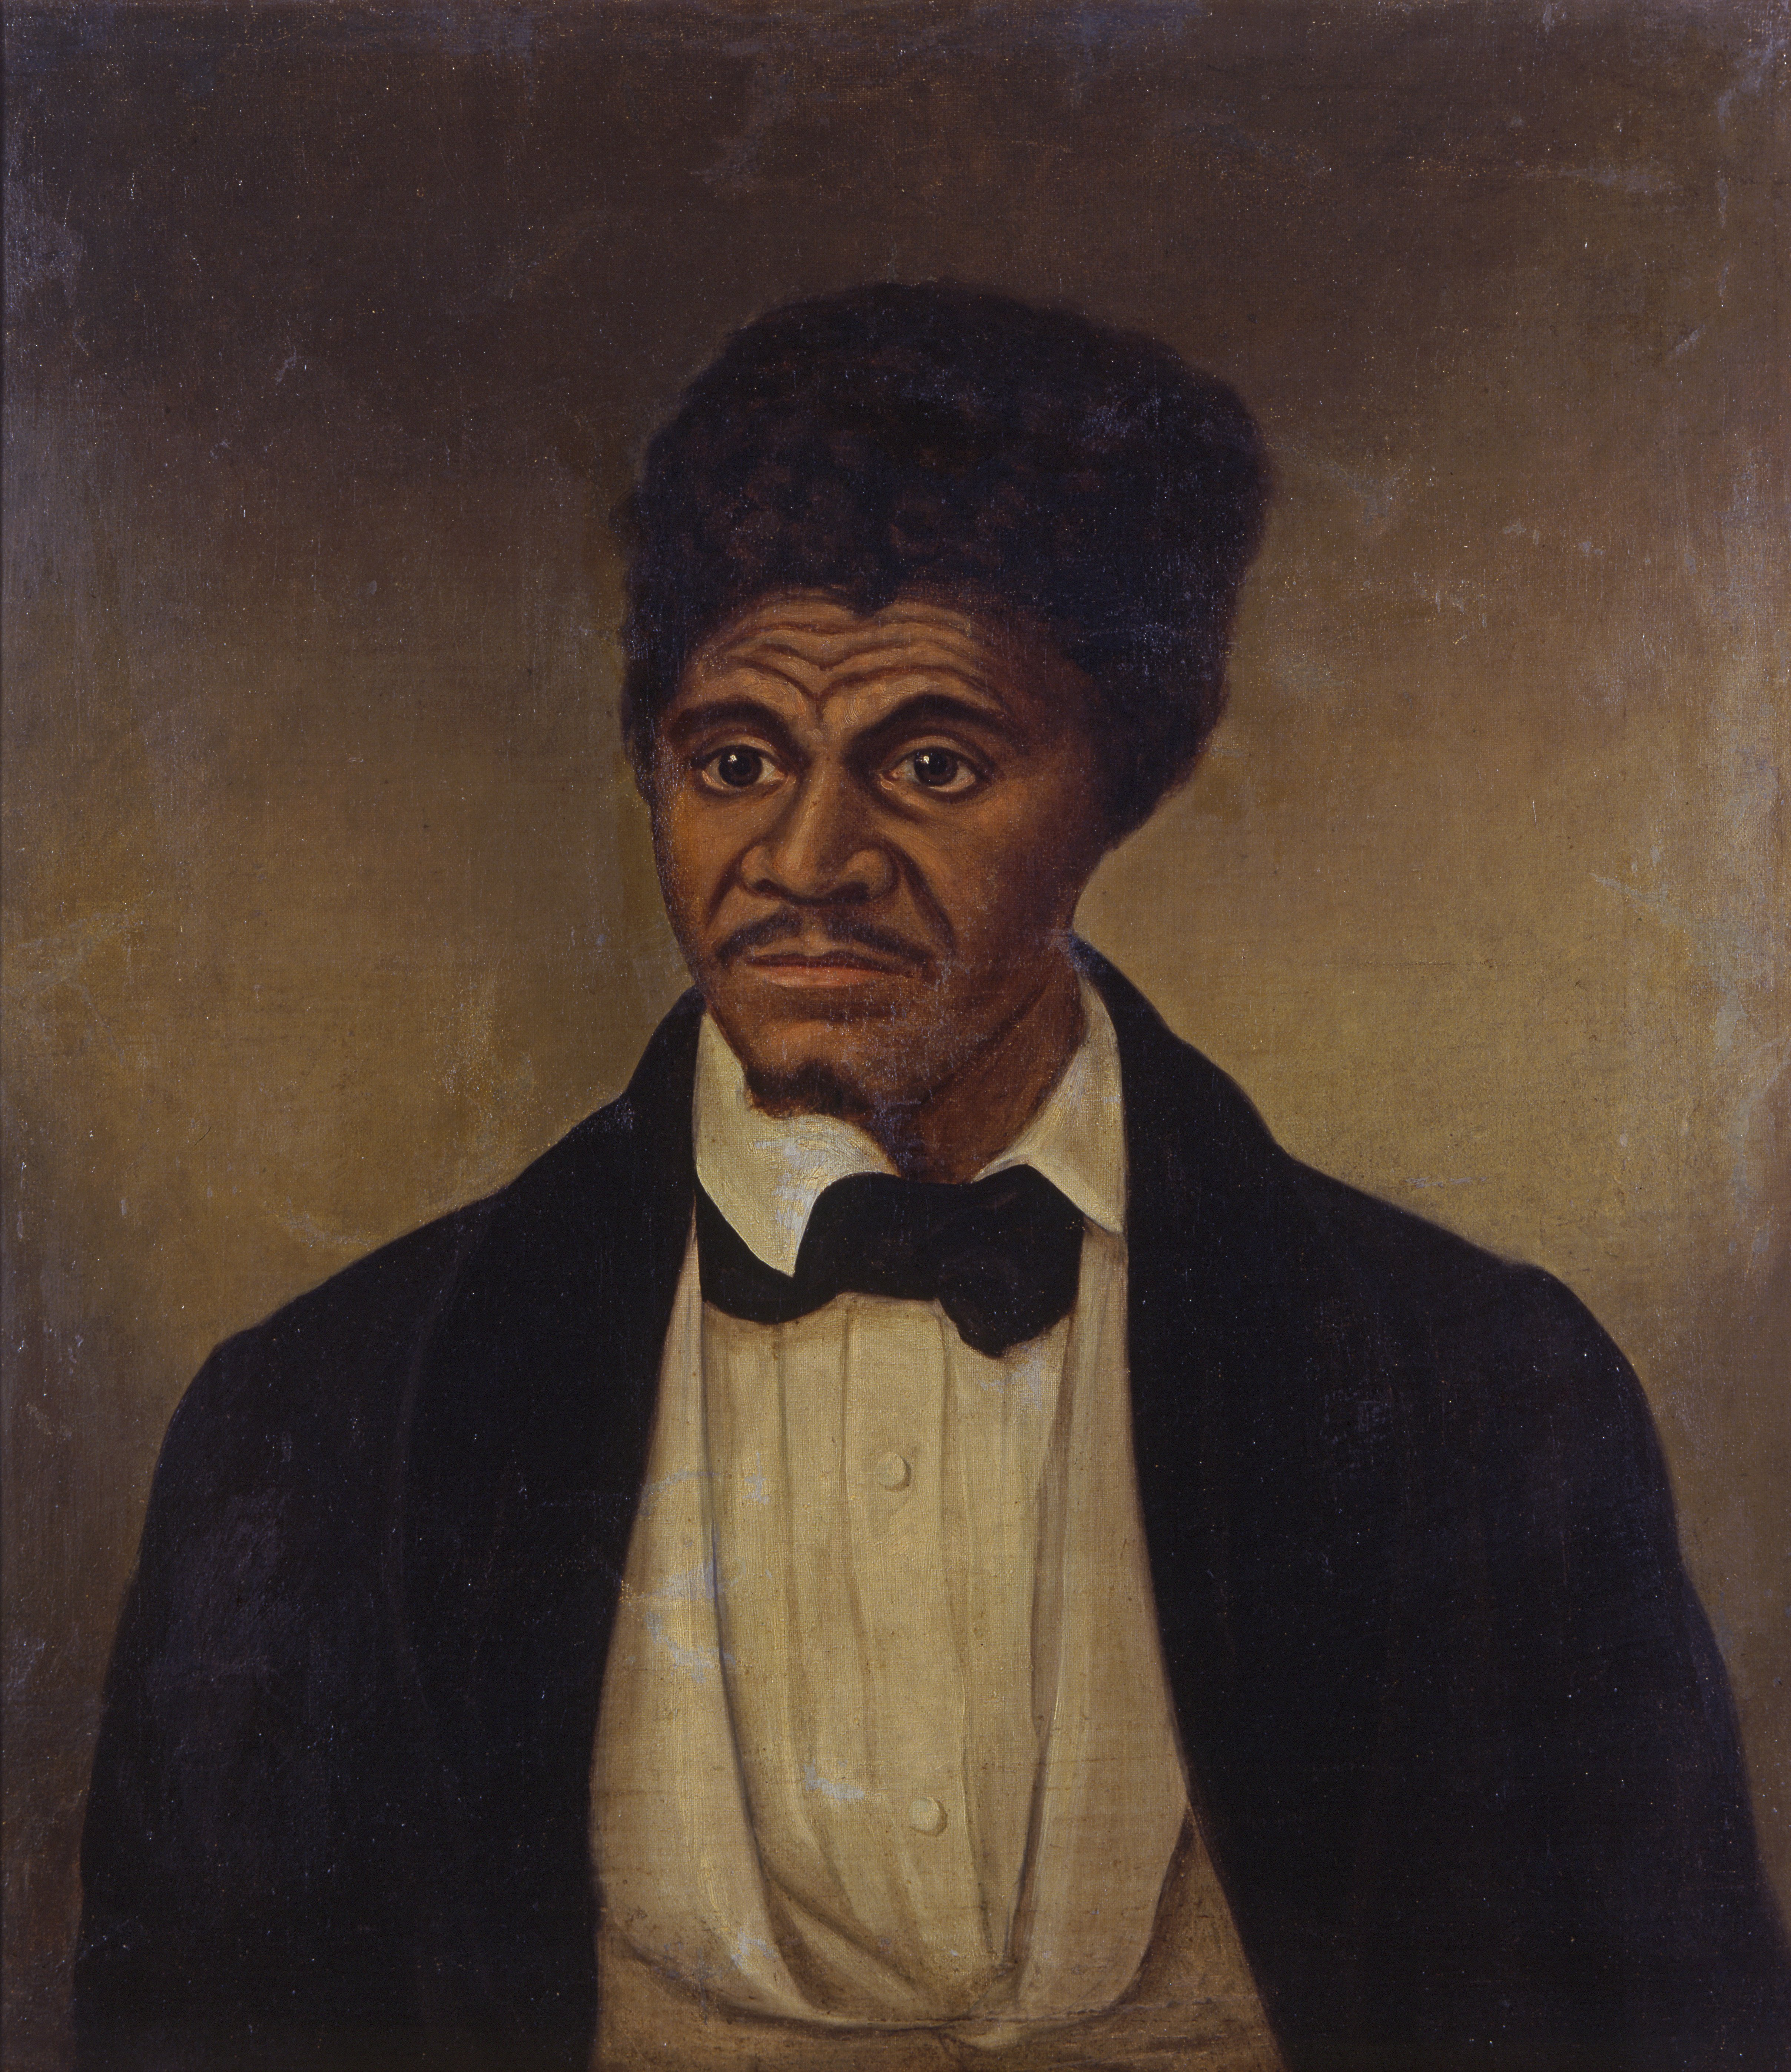 dred scott decision Dred scott's attorneys then filed an appeal (december, 1854) in the united states supreme court, so worded as to call for a decision that would include judgment on scott's right to freedom, the legal rights of slaves, and the validity of the missouri compromise and the powers of congress to regulate slavery.